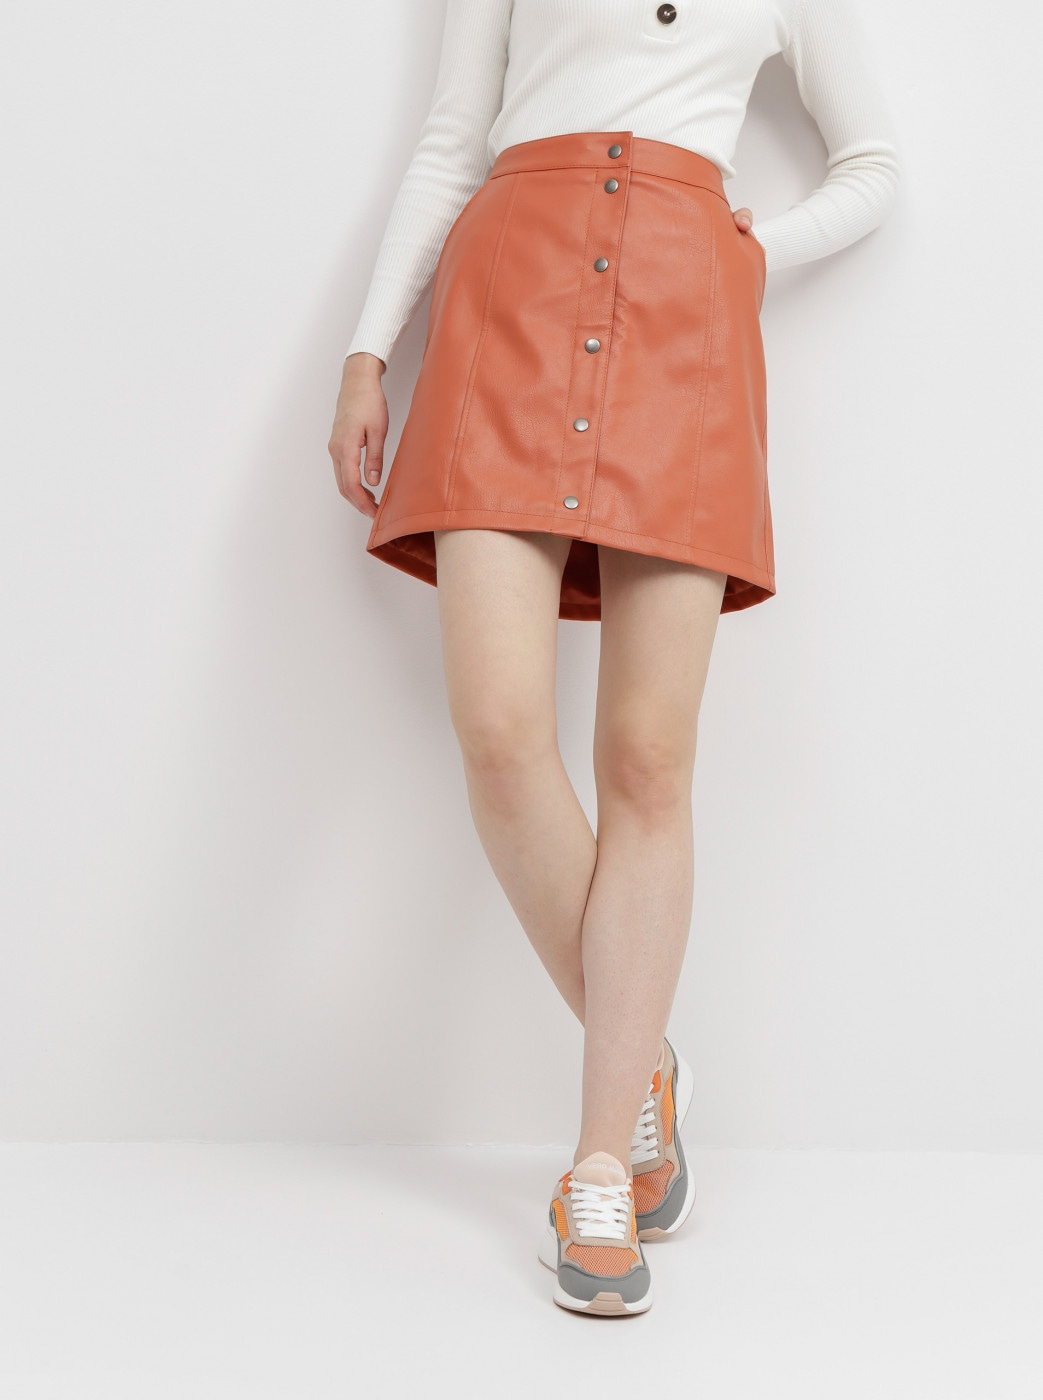 Vero MODA Conneryray Orange Imitation Leather Skirt